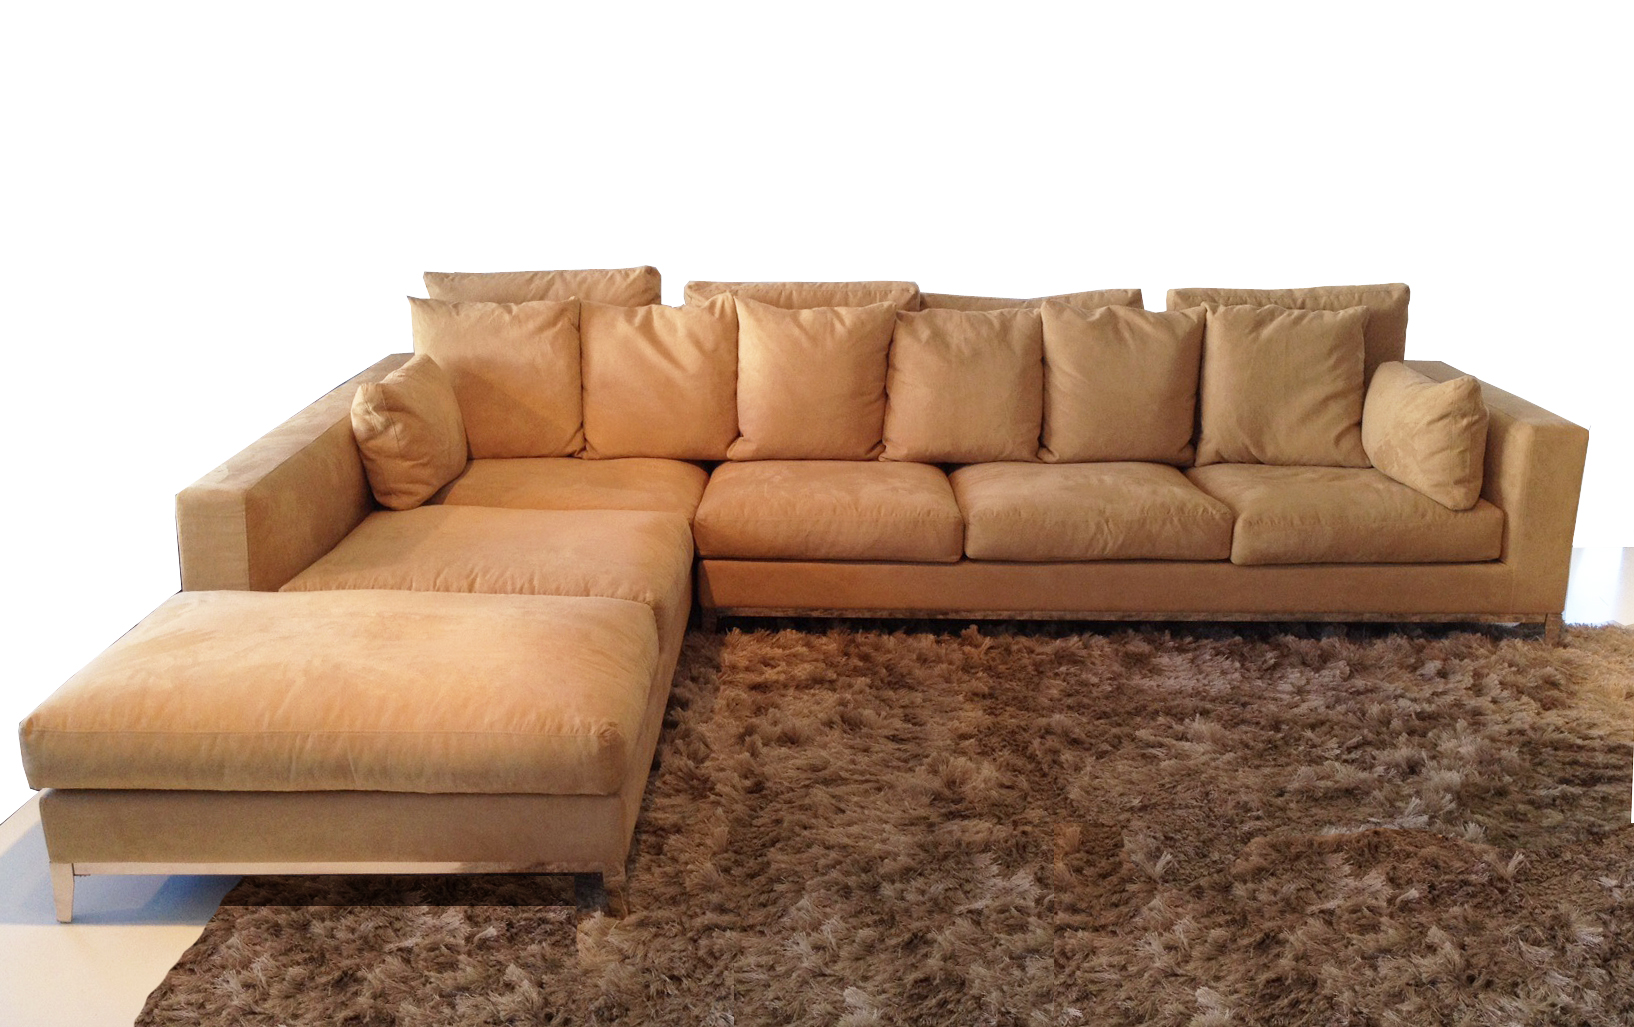 Good Large Sofa 50 For Your Sofa Room Ideas with Large Sofa